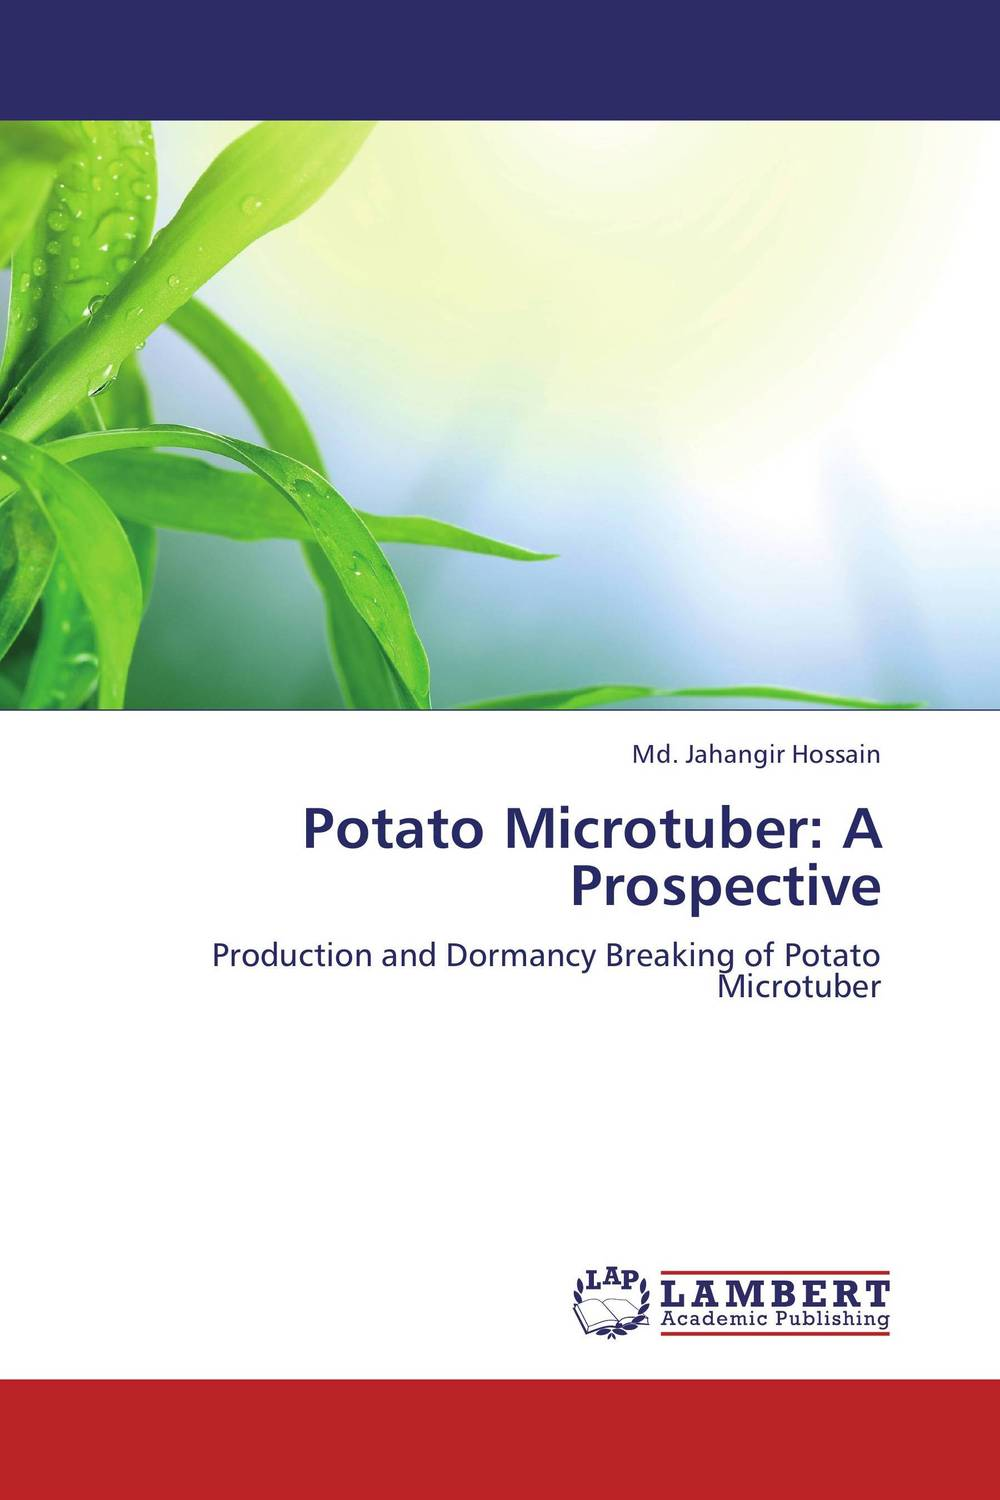 Potato Microtuber: A Prospective seed dormancy and germination